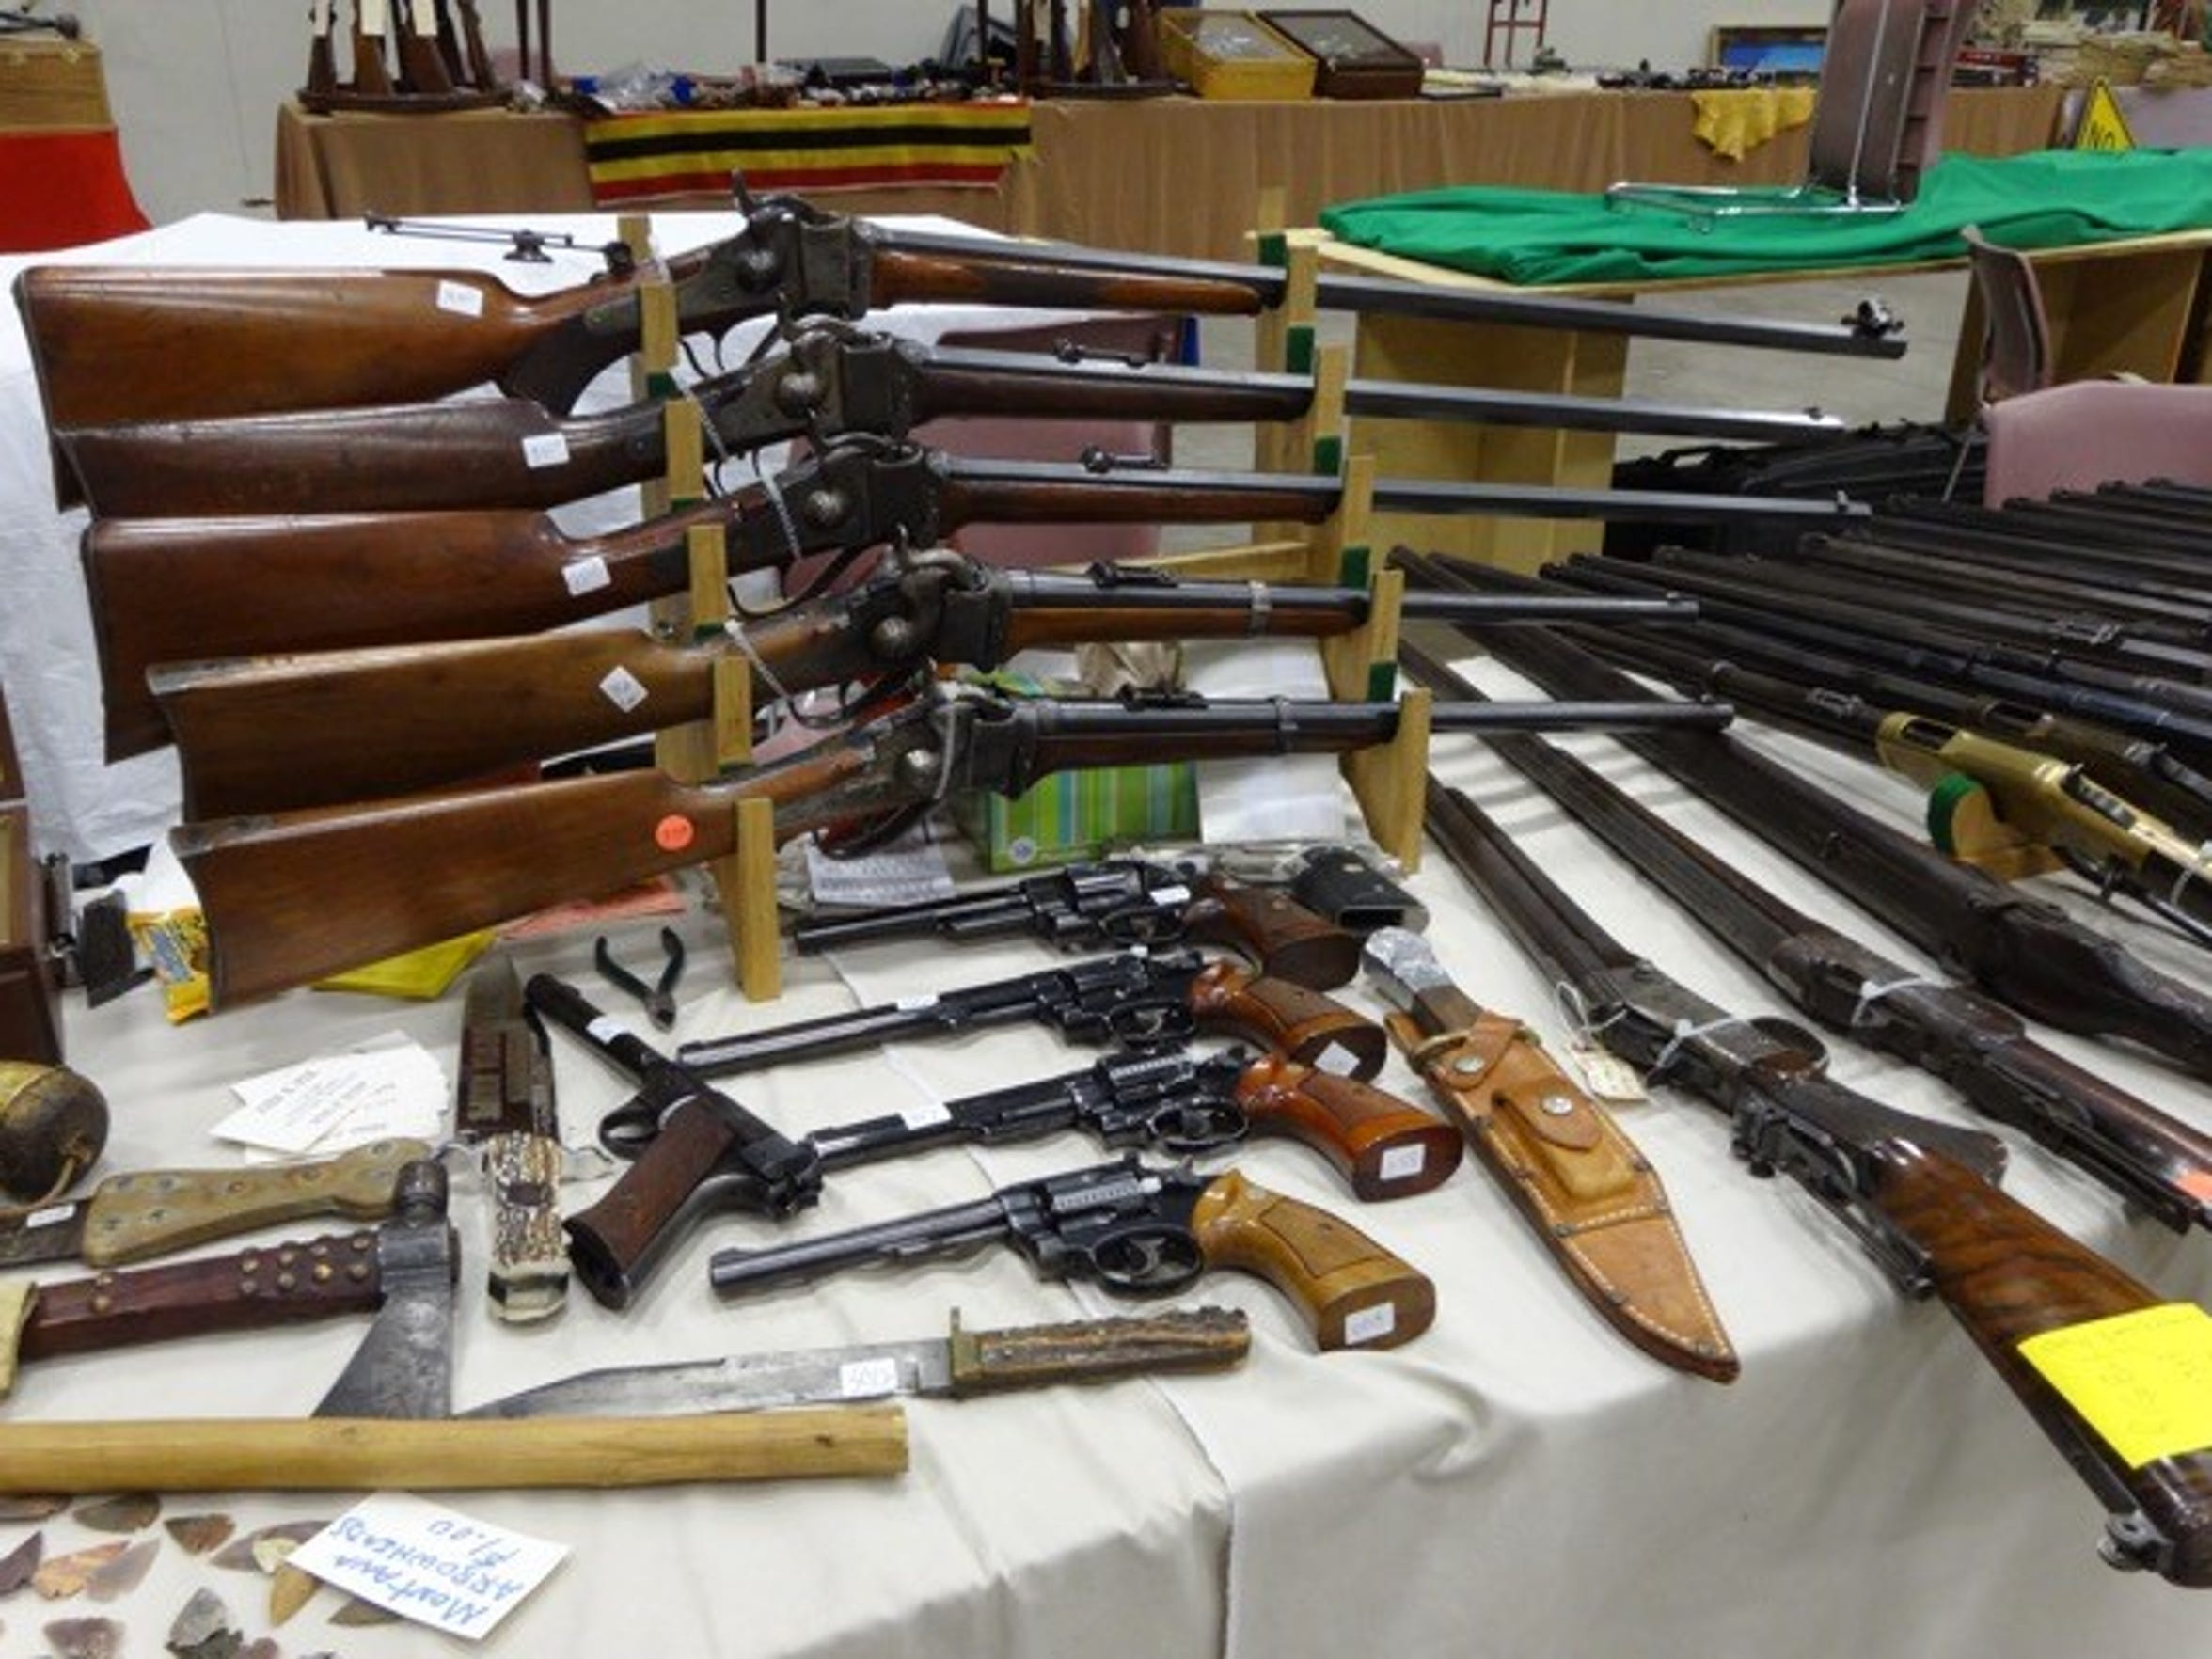 There are plenty of antique firearms on display at the Great Falls Western Collectibles & Antique Gun Show.